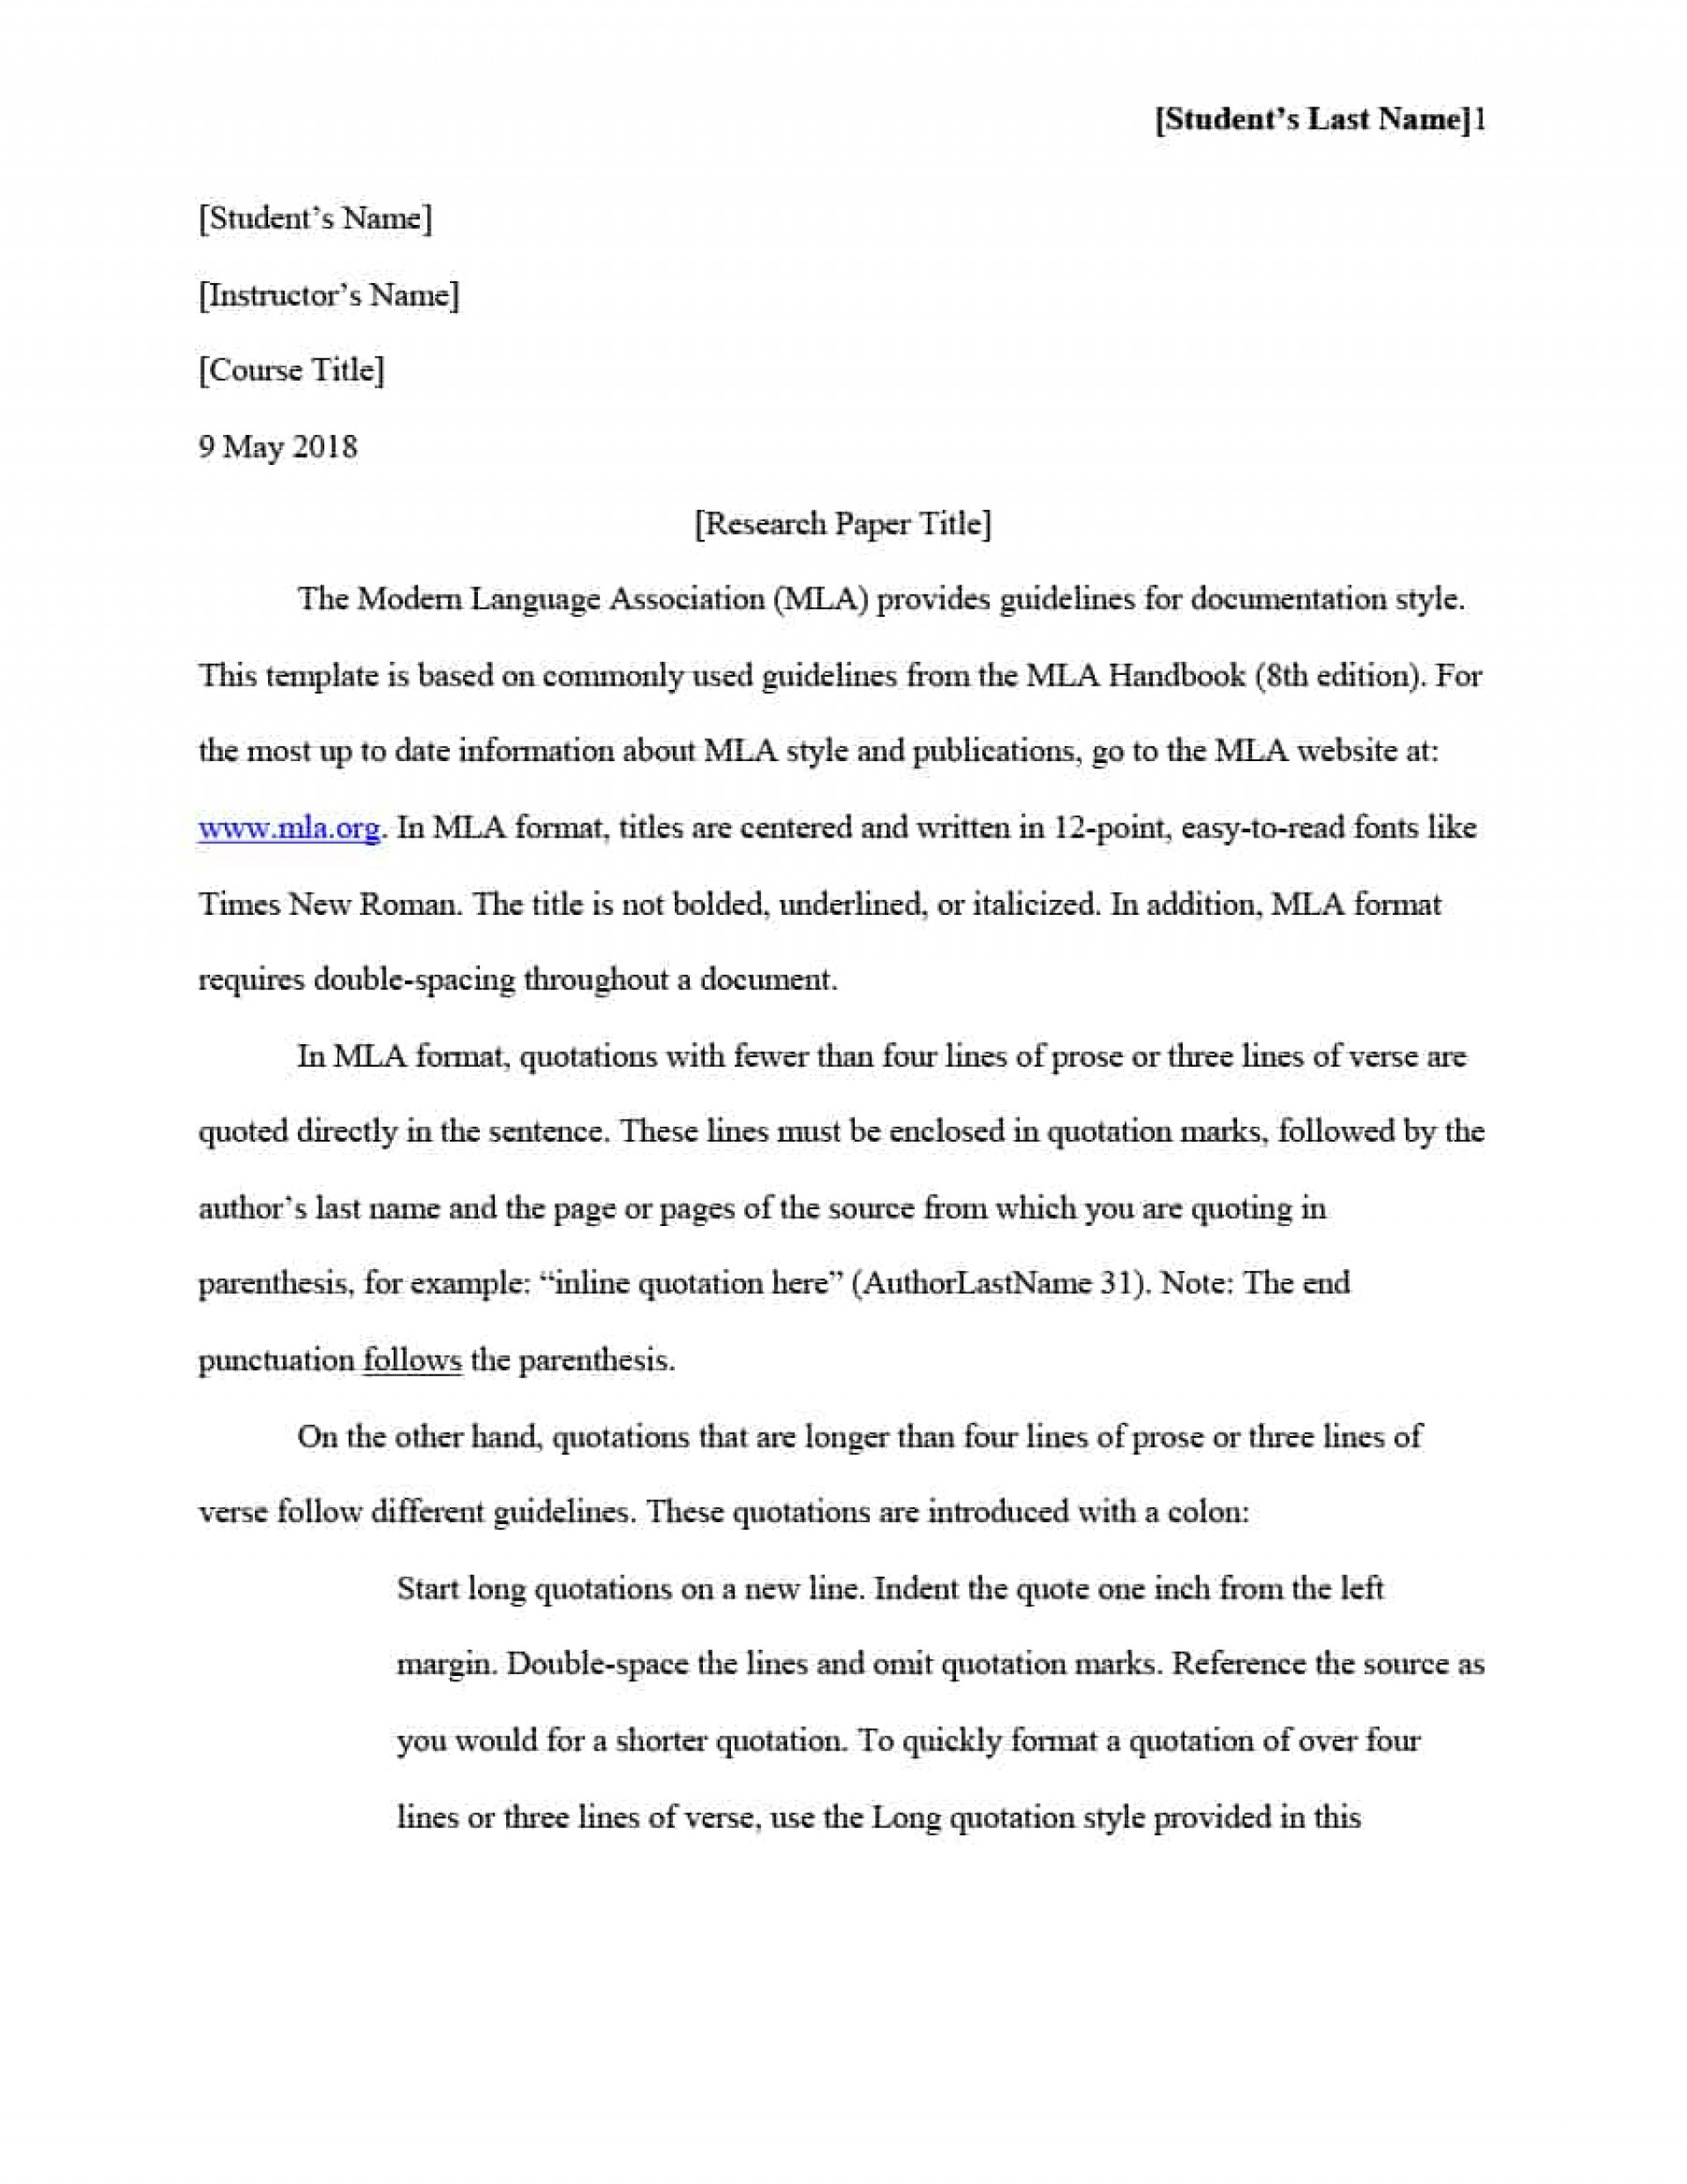 007 Research Paper Mla Format Template How To Cite Book Rare A In 1920